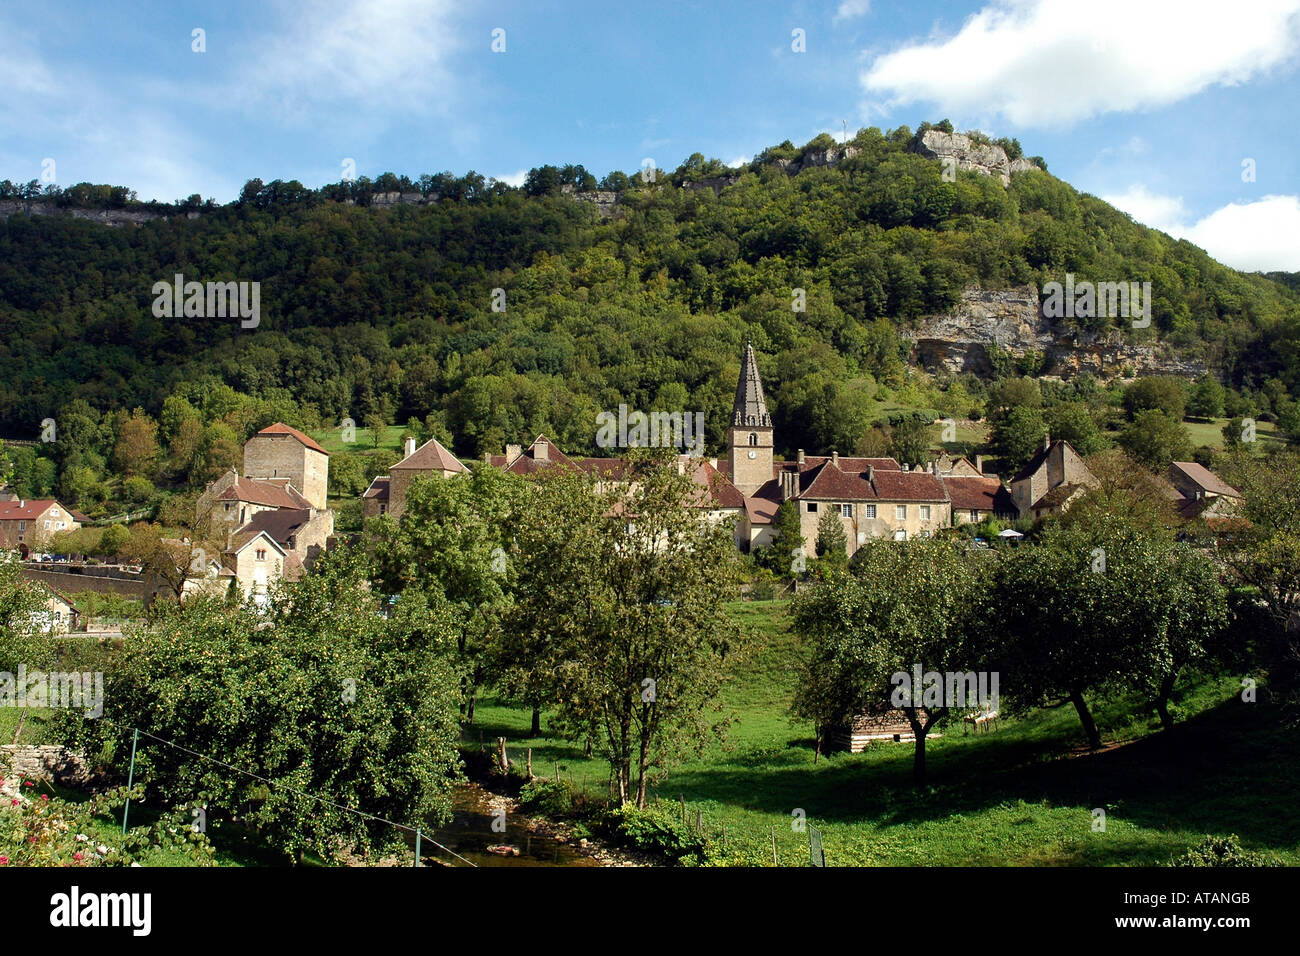 The 9th-century abbey in the village of Baume-les-Messieurs deep in the Cirque de Baume in France's Jura region - Stock Image